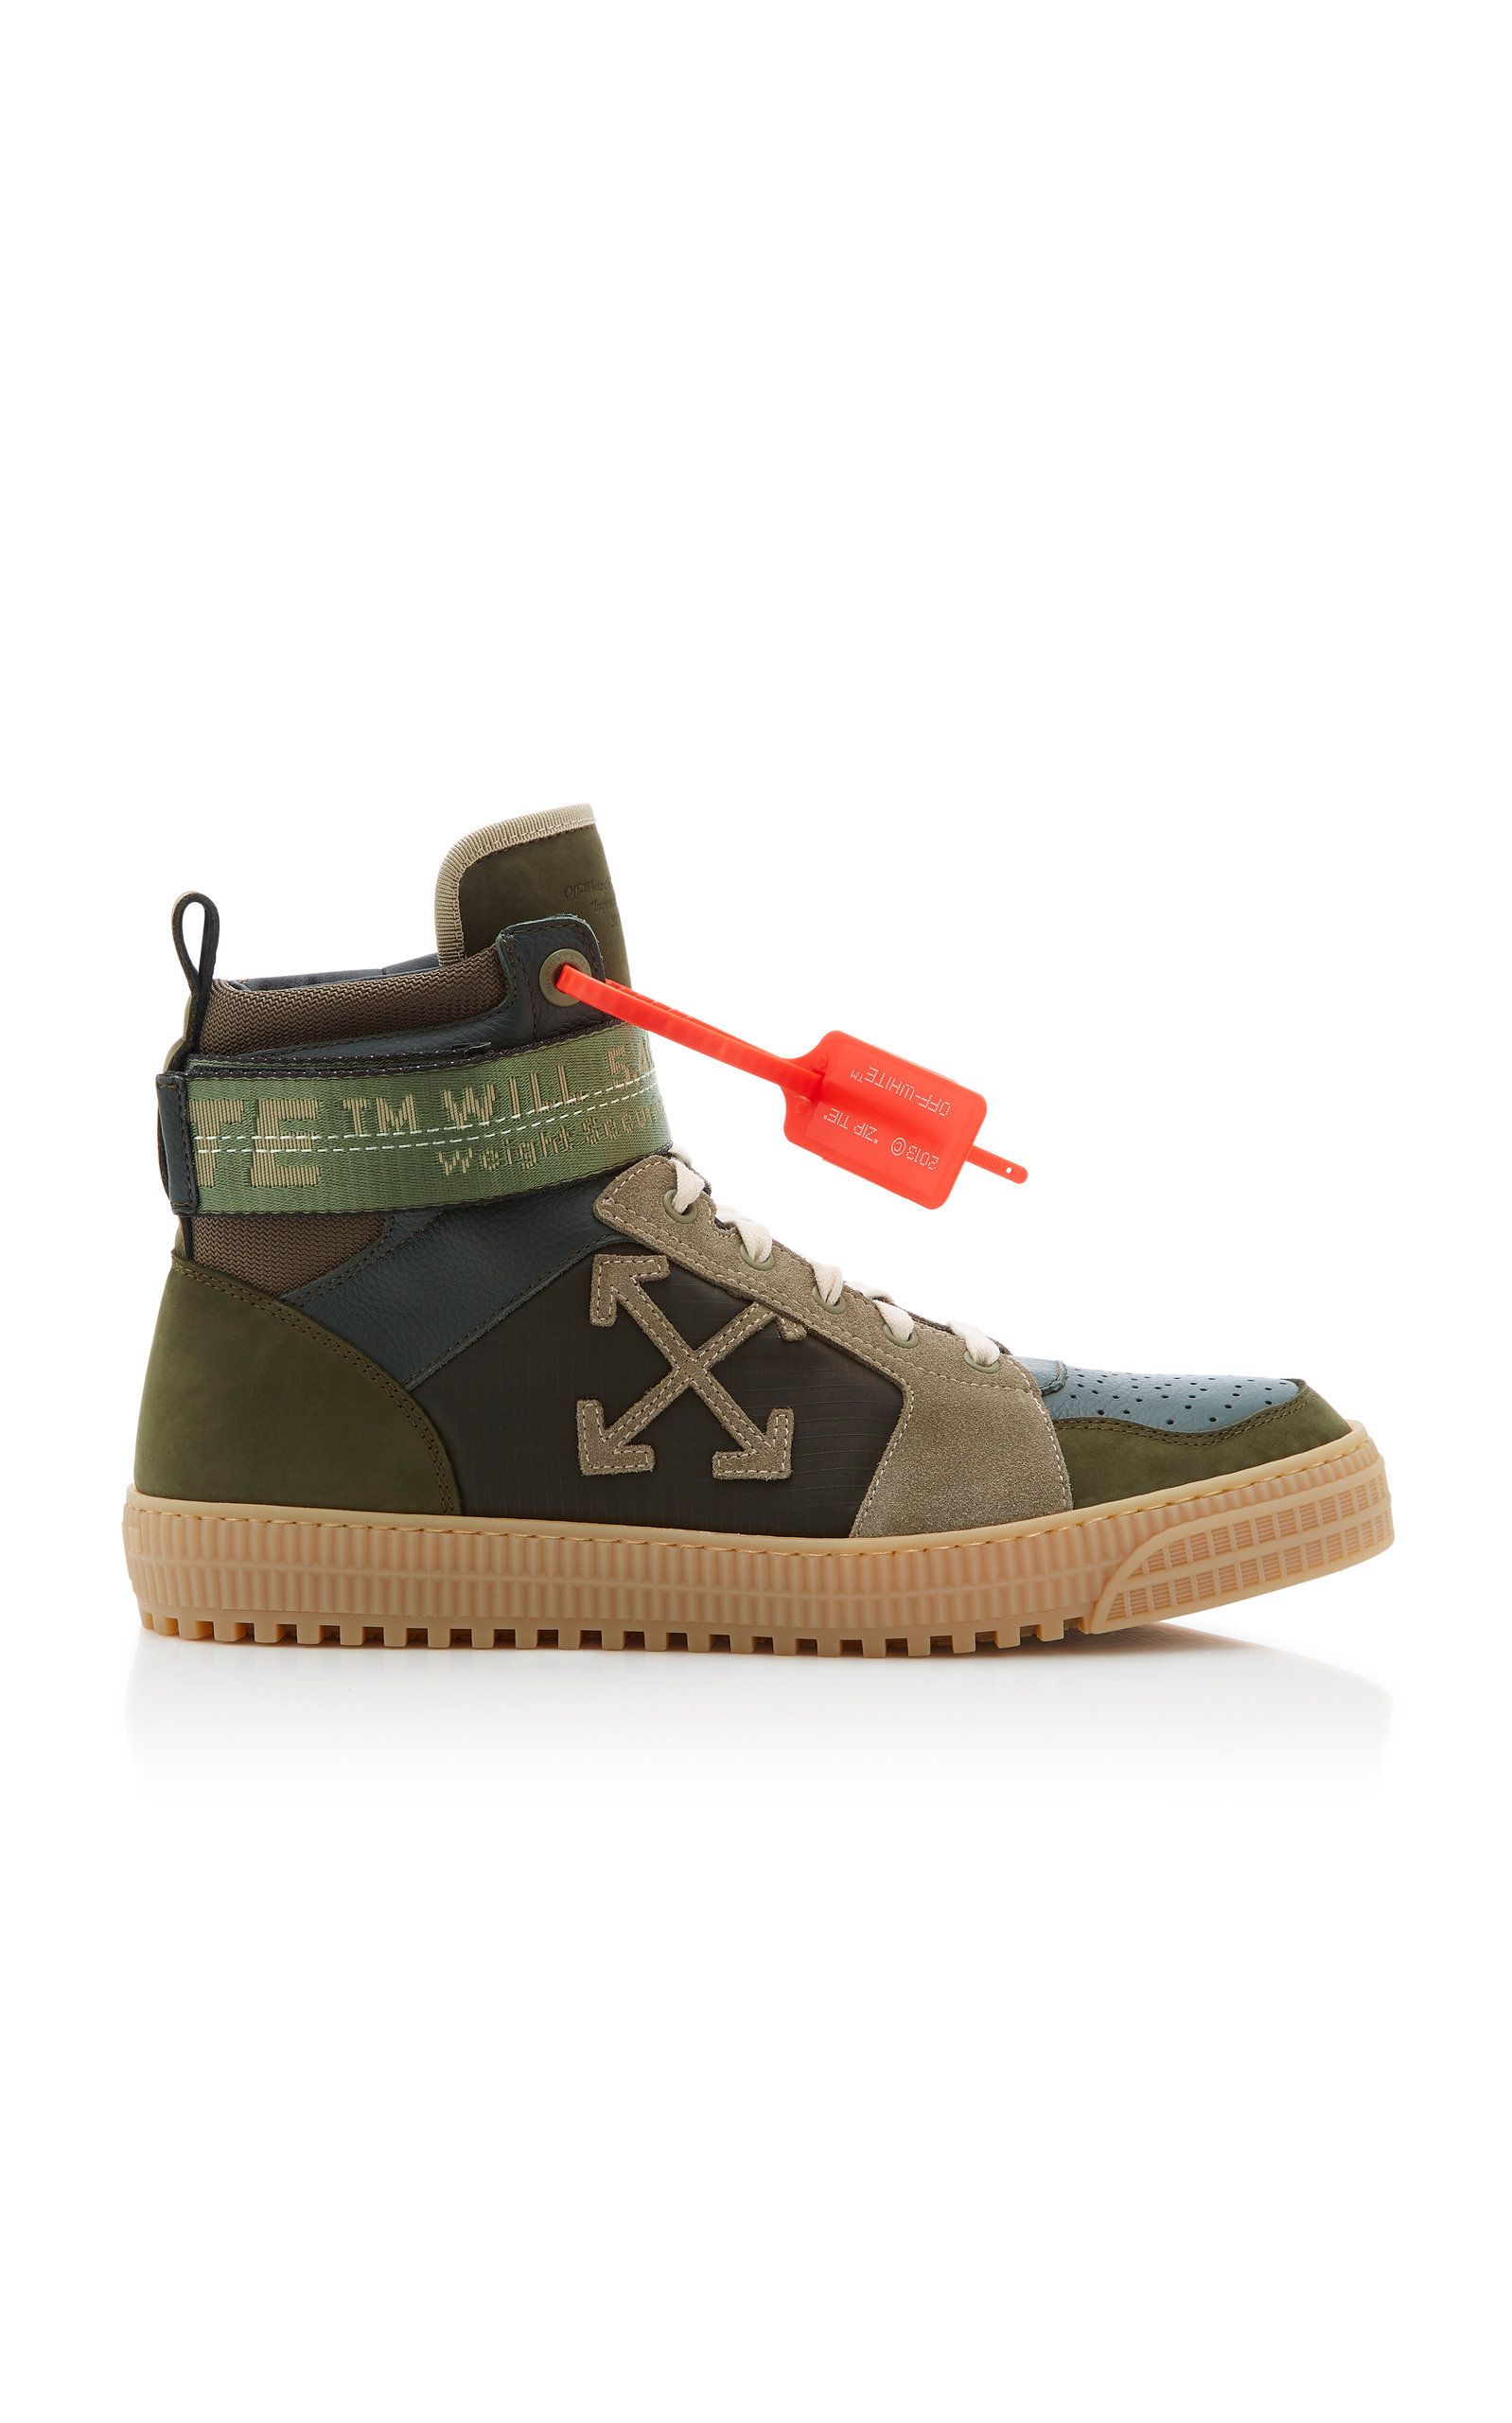 Off-white Industrial Paneled Leather